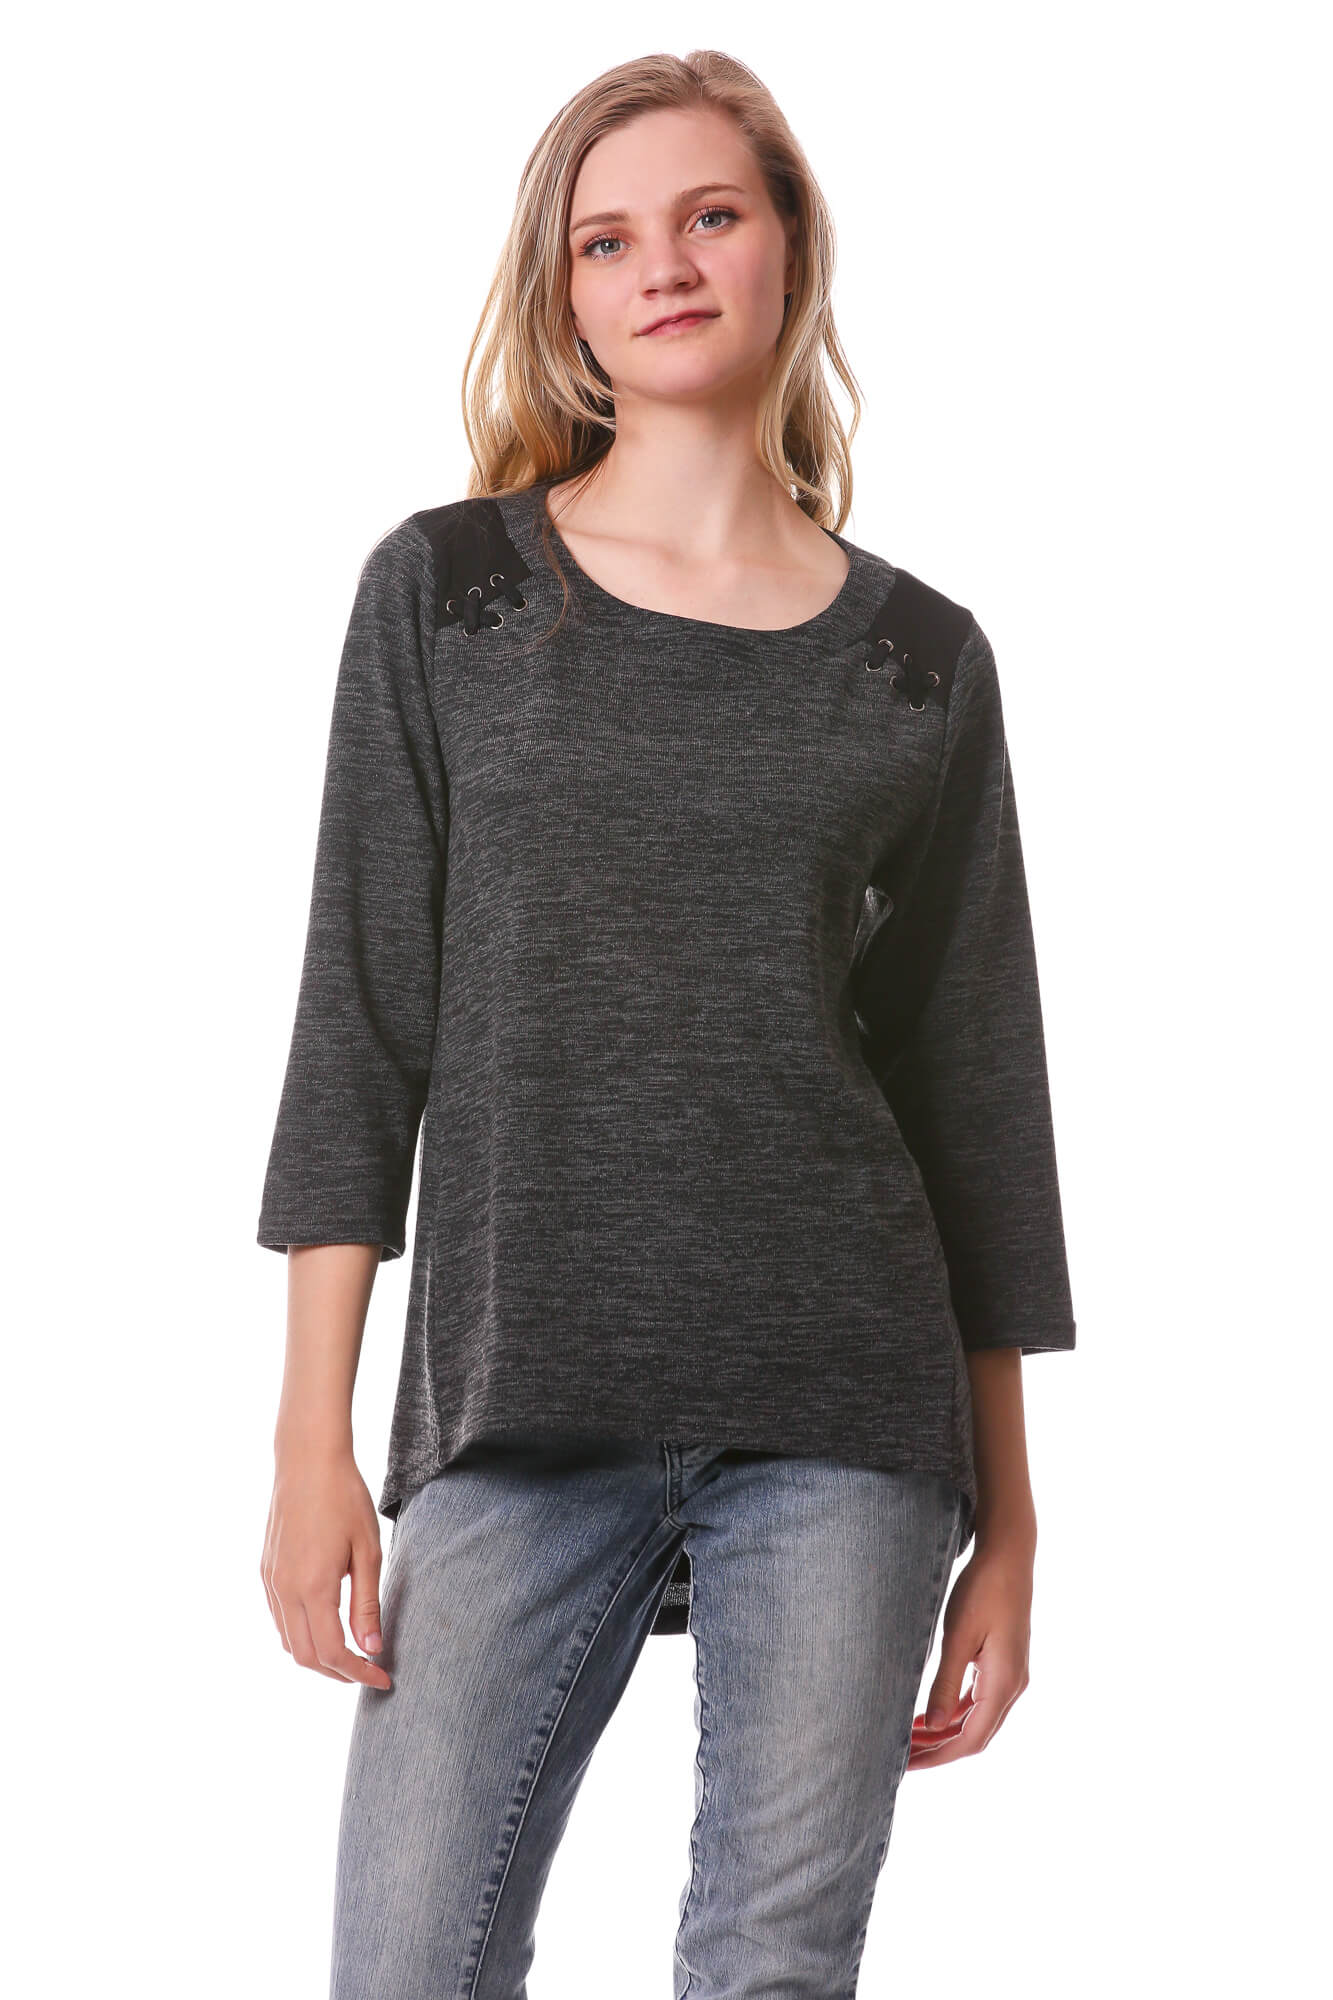 Women's High Low Top with 3/4 Sleeves | Basic Laced Shoulder | Neesha